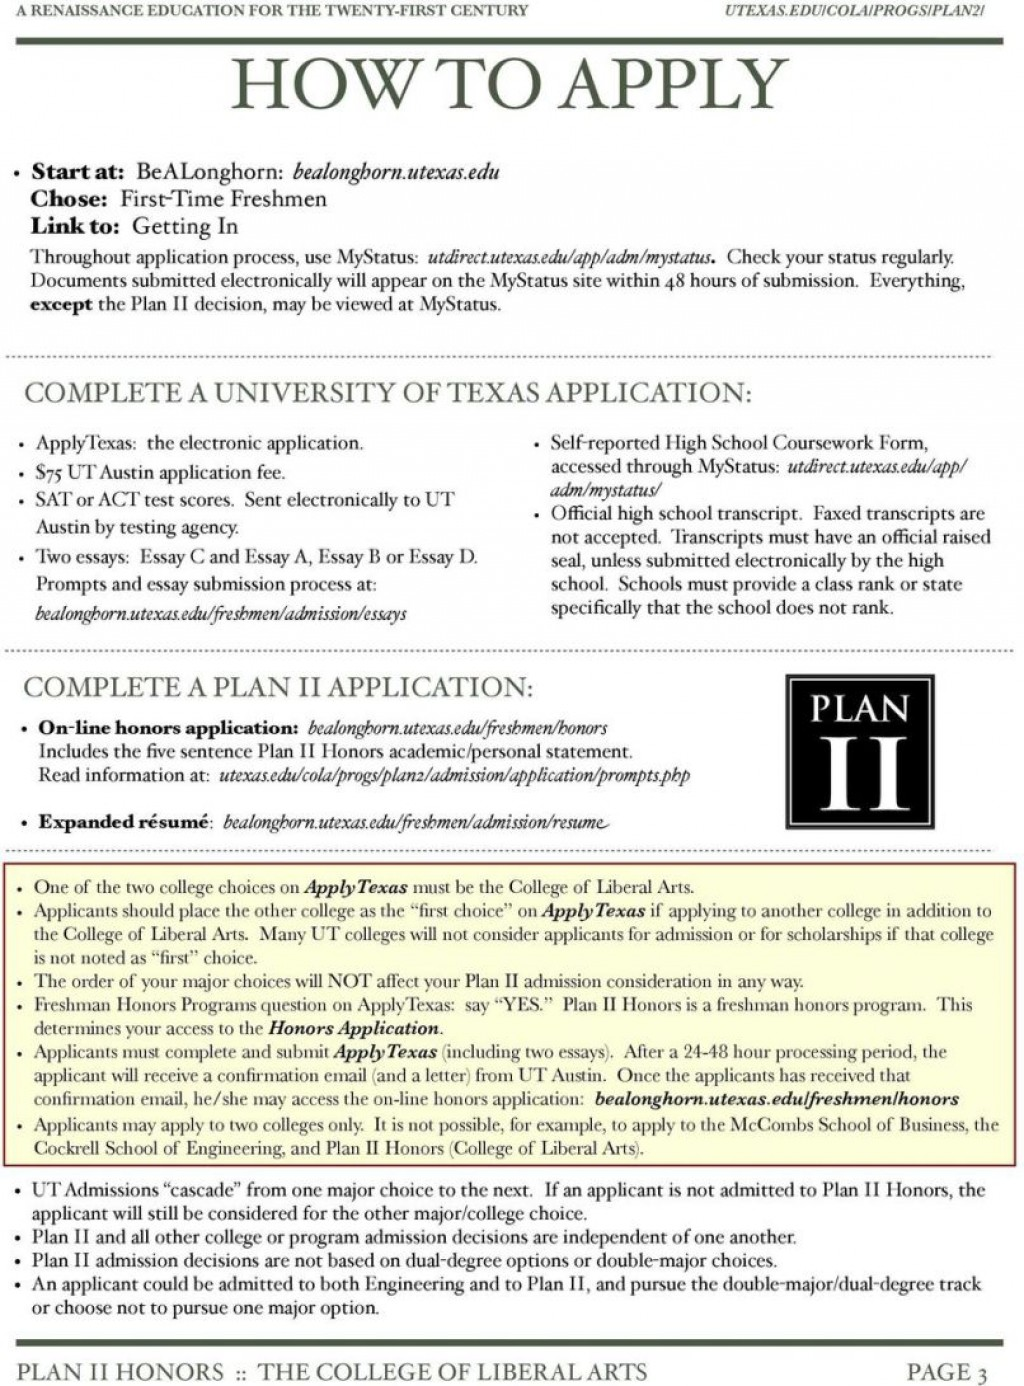 005 Essay Example Applytexas Prompts Poemdoc Or Apply Texas Topic Examples P Striking C 2016 Prompt Large